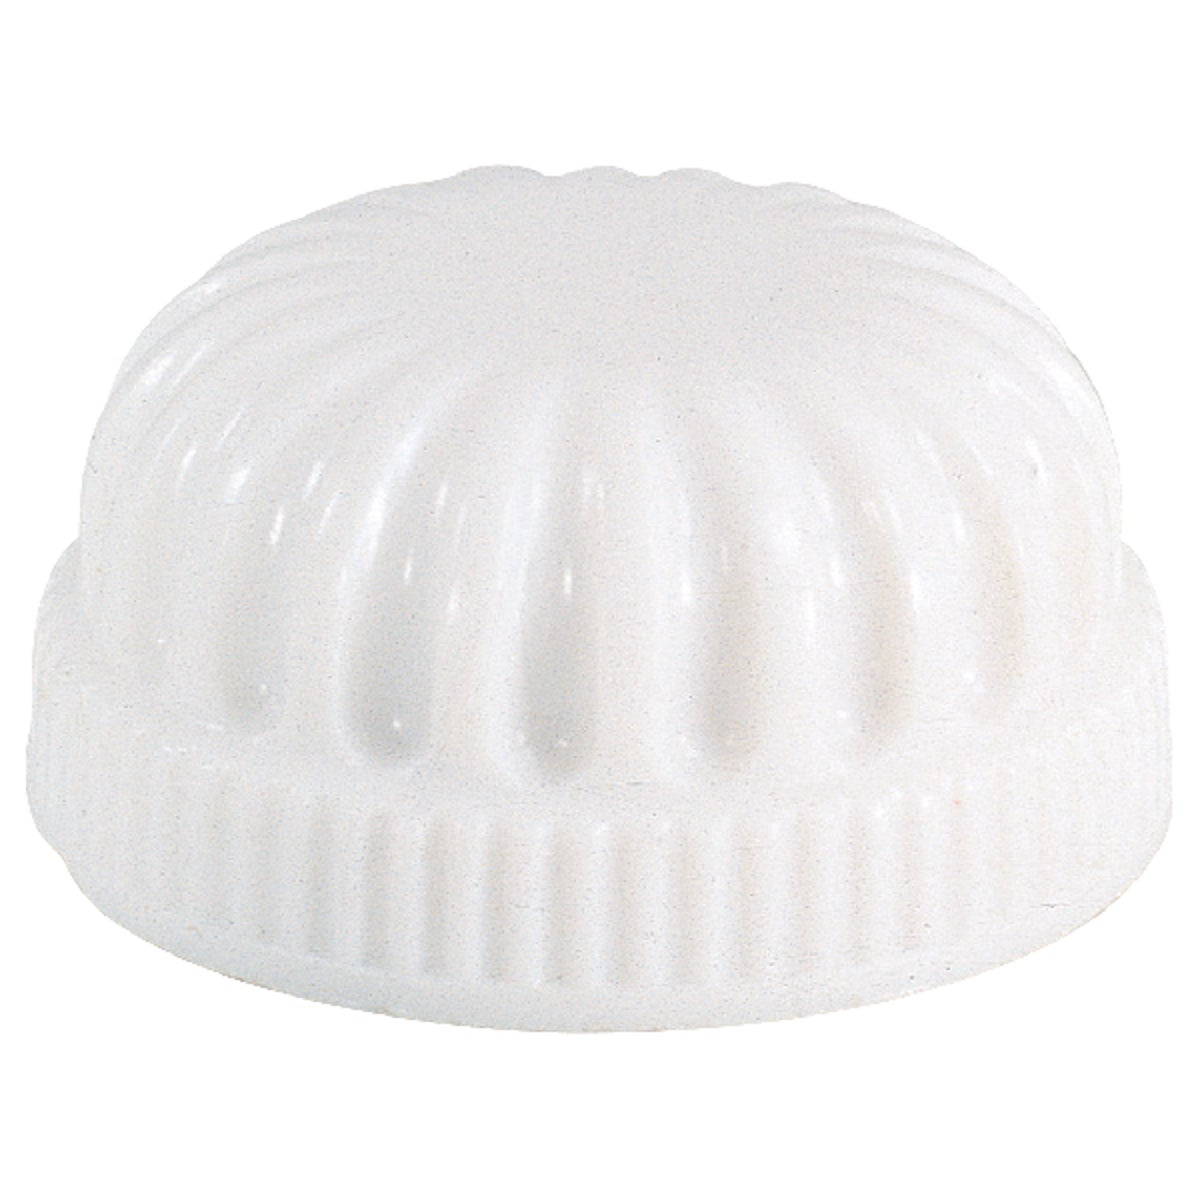 WHITE LOCK-UP CAP - 70158 by Westinghouse Lightng